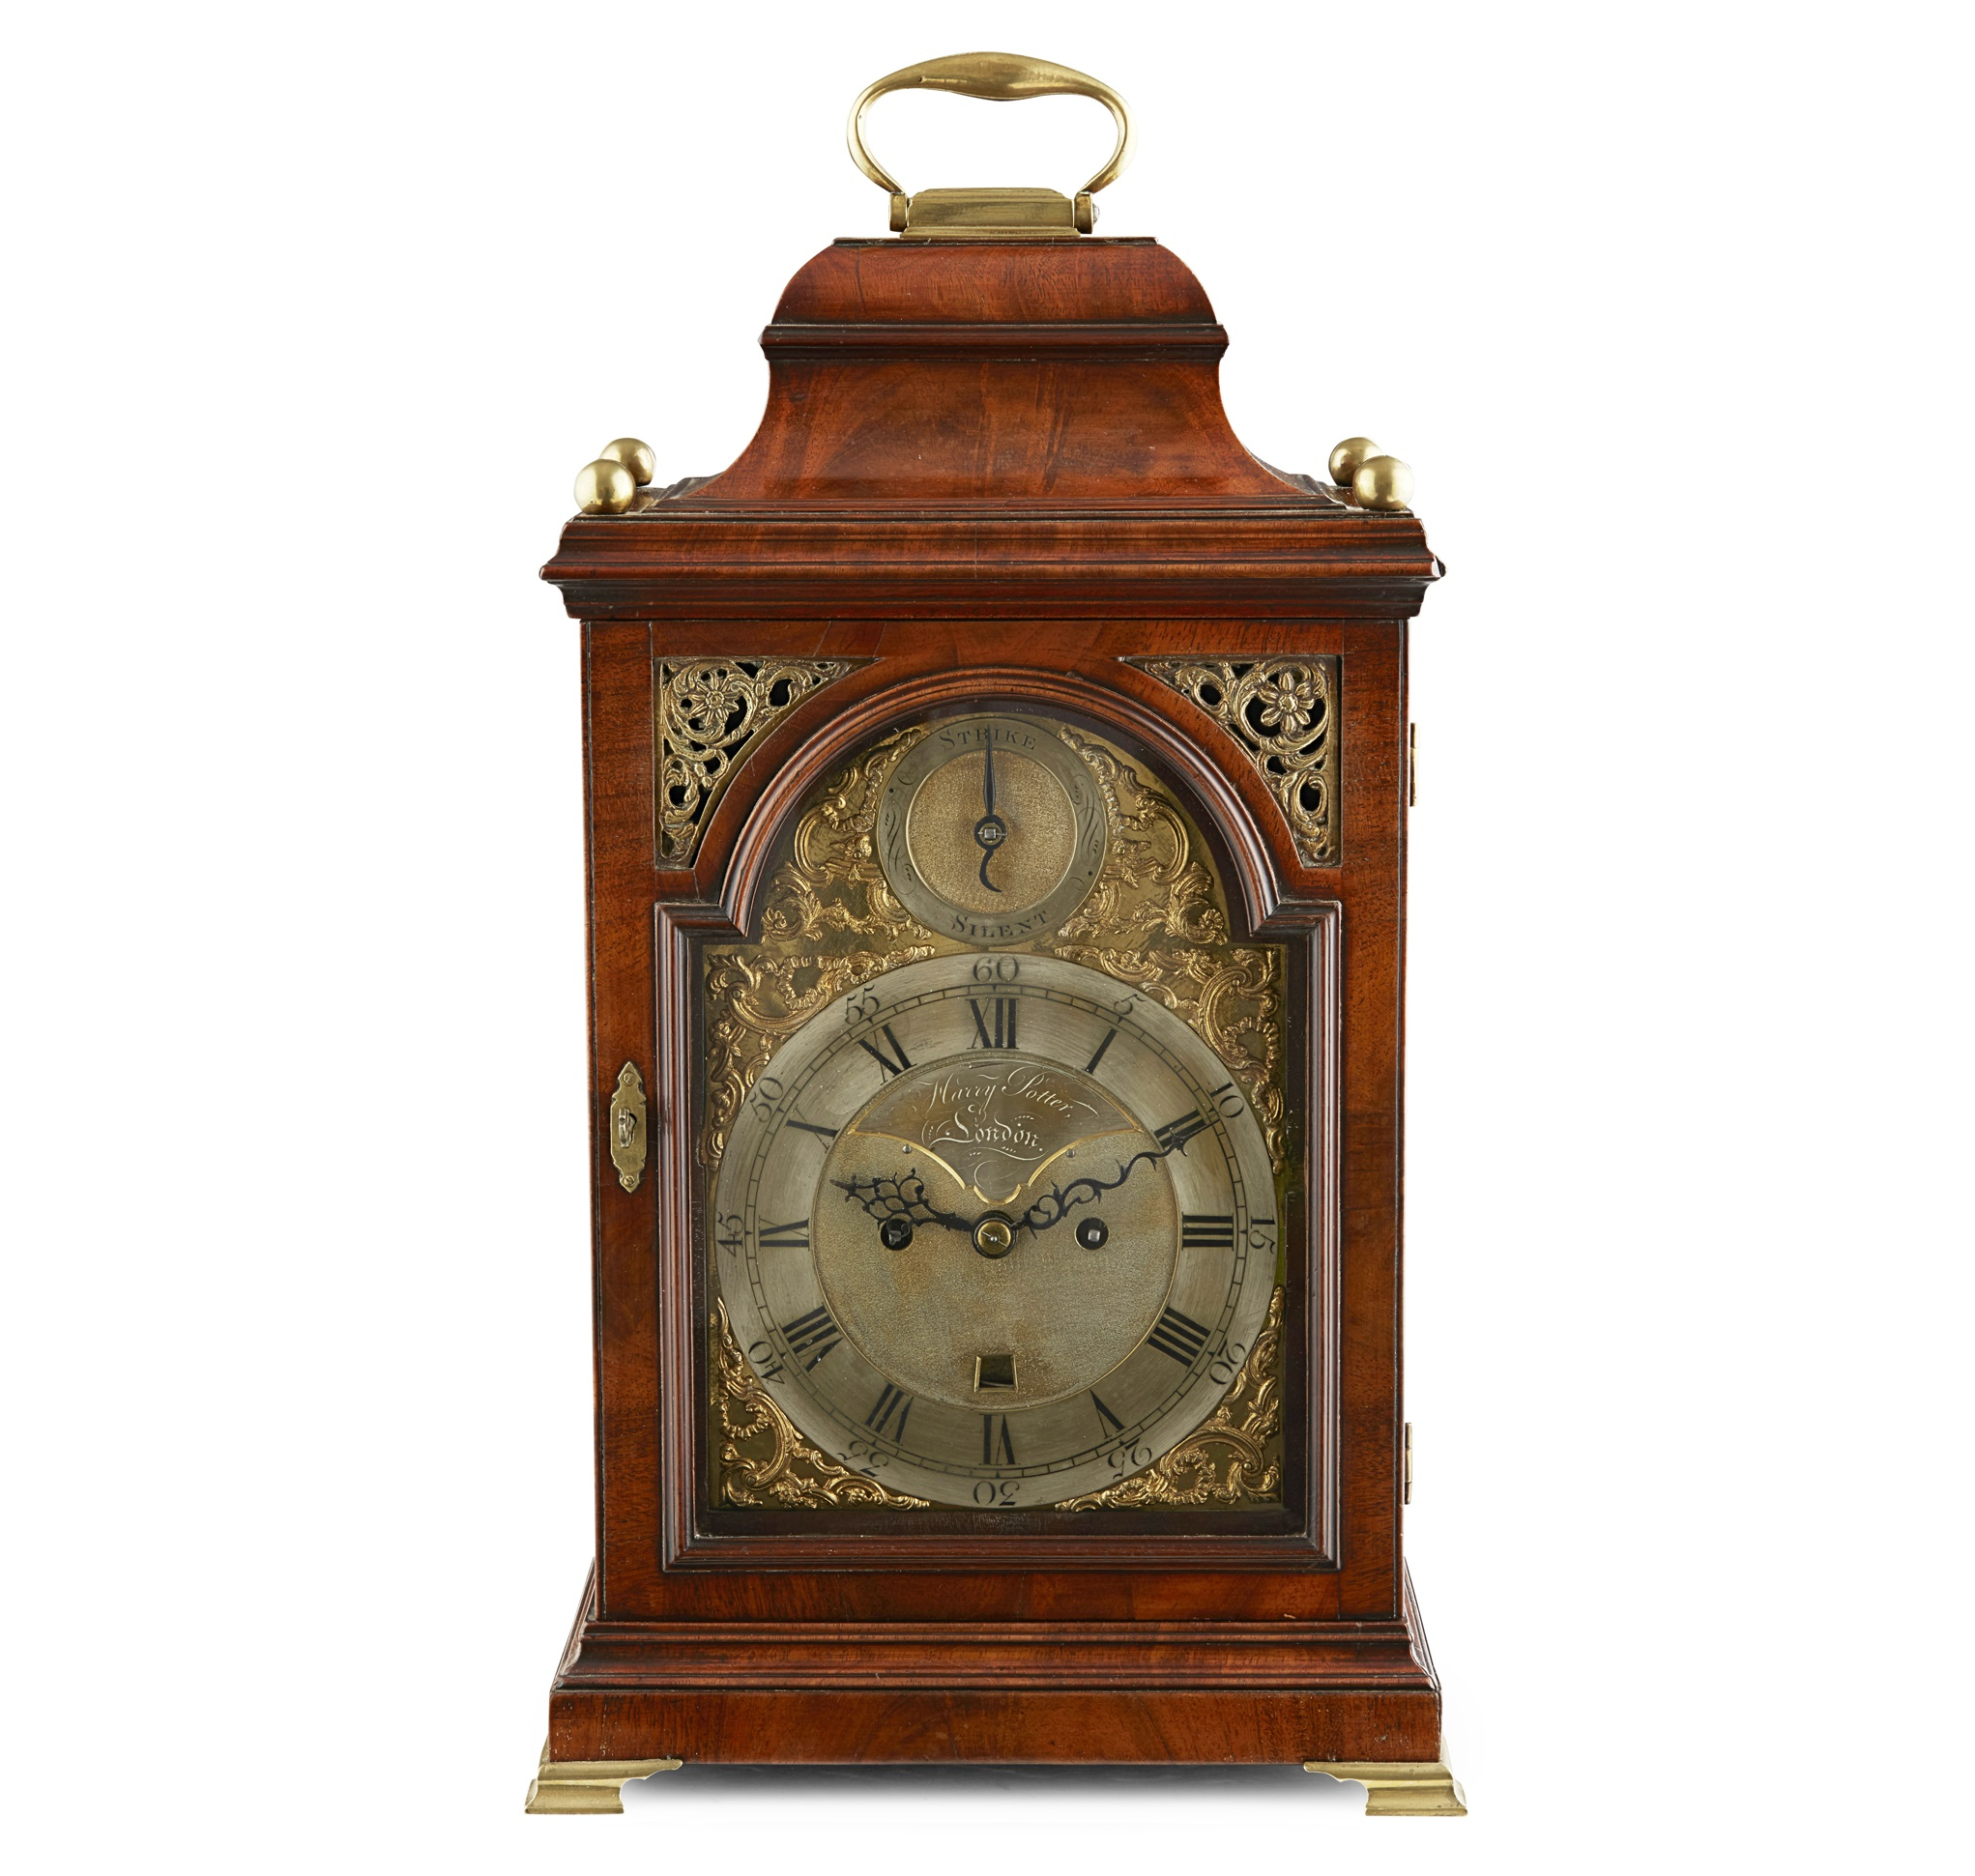 GEORGE III MAHOGANY HOUR REPEATING BRACKET CLOCK, HARRY POTTER, LONDON